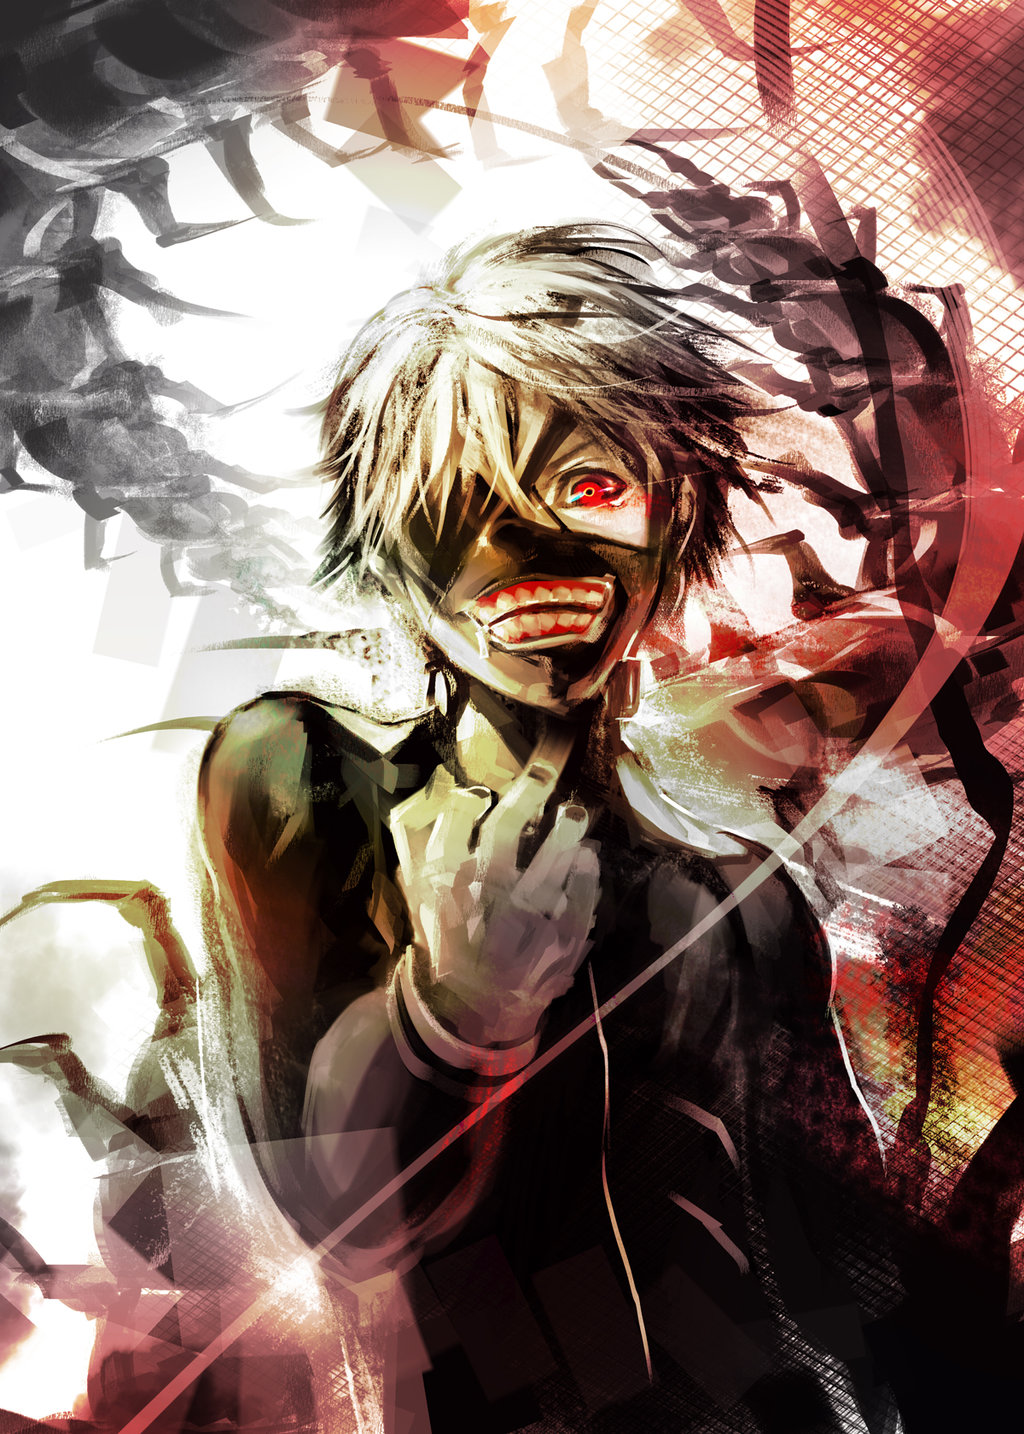 Tokyo Ghoul Hd Wallpapers Backgrounds Wallpaper Tokyo Ghoul Wallpaper Hd Anime 1024x1434 Wallpaper Teahub Io